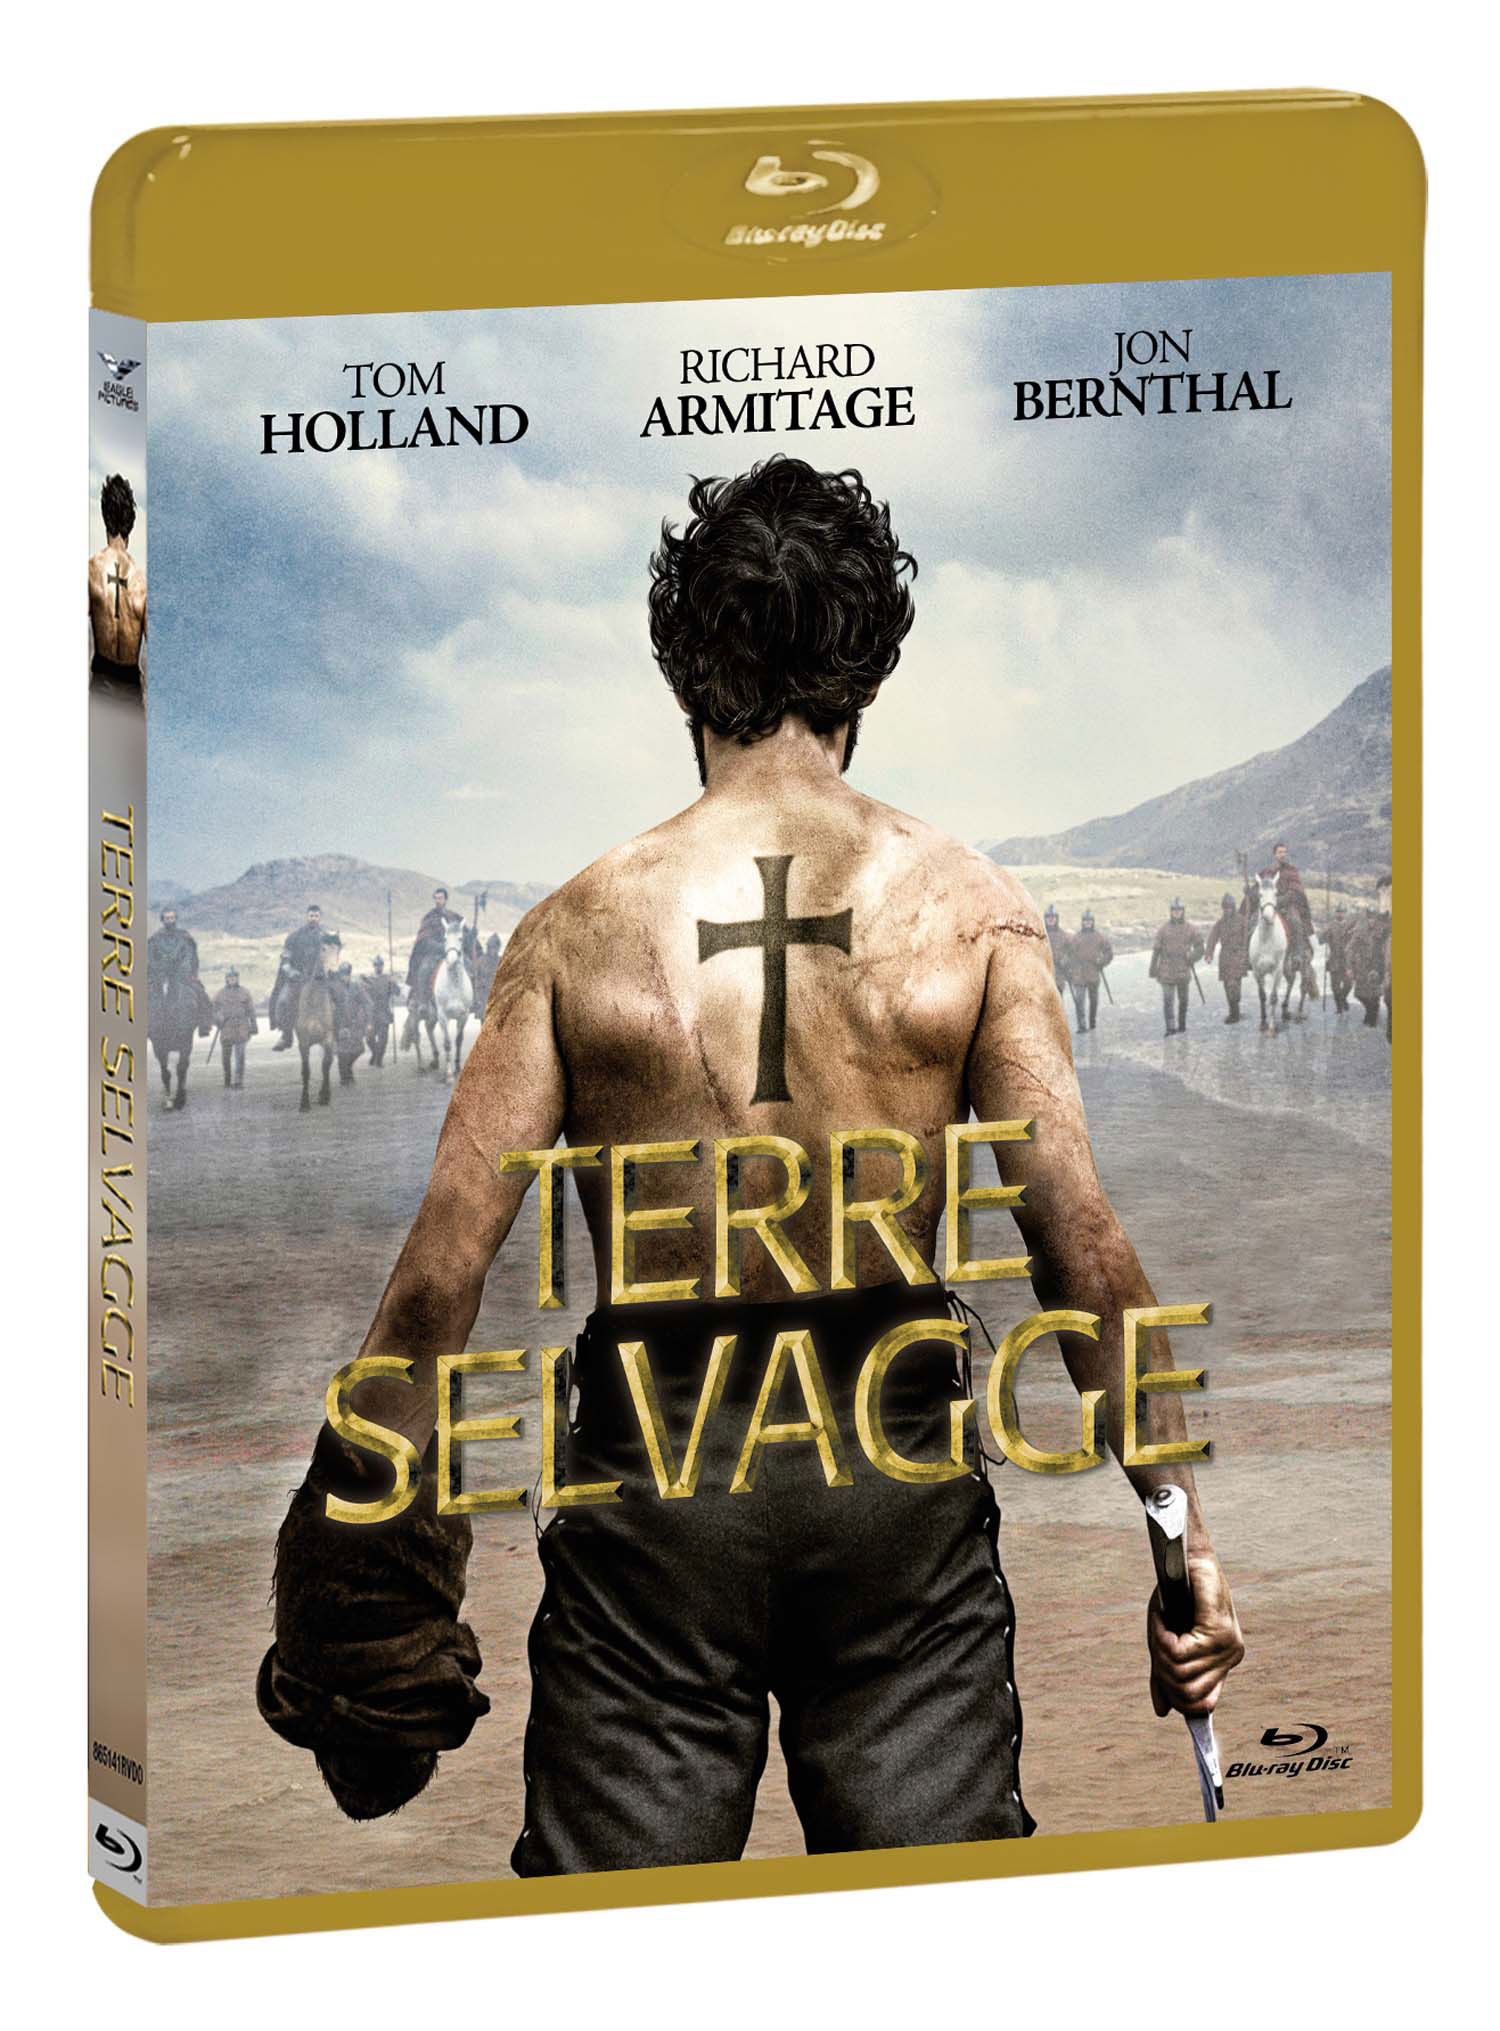 TERRE SELVAGGE - BLU RAY